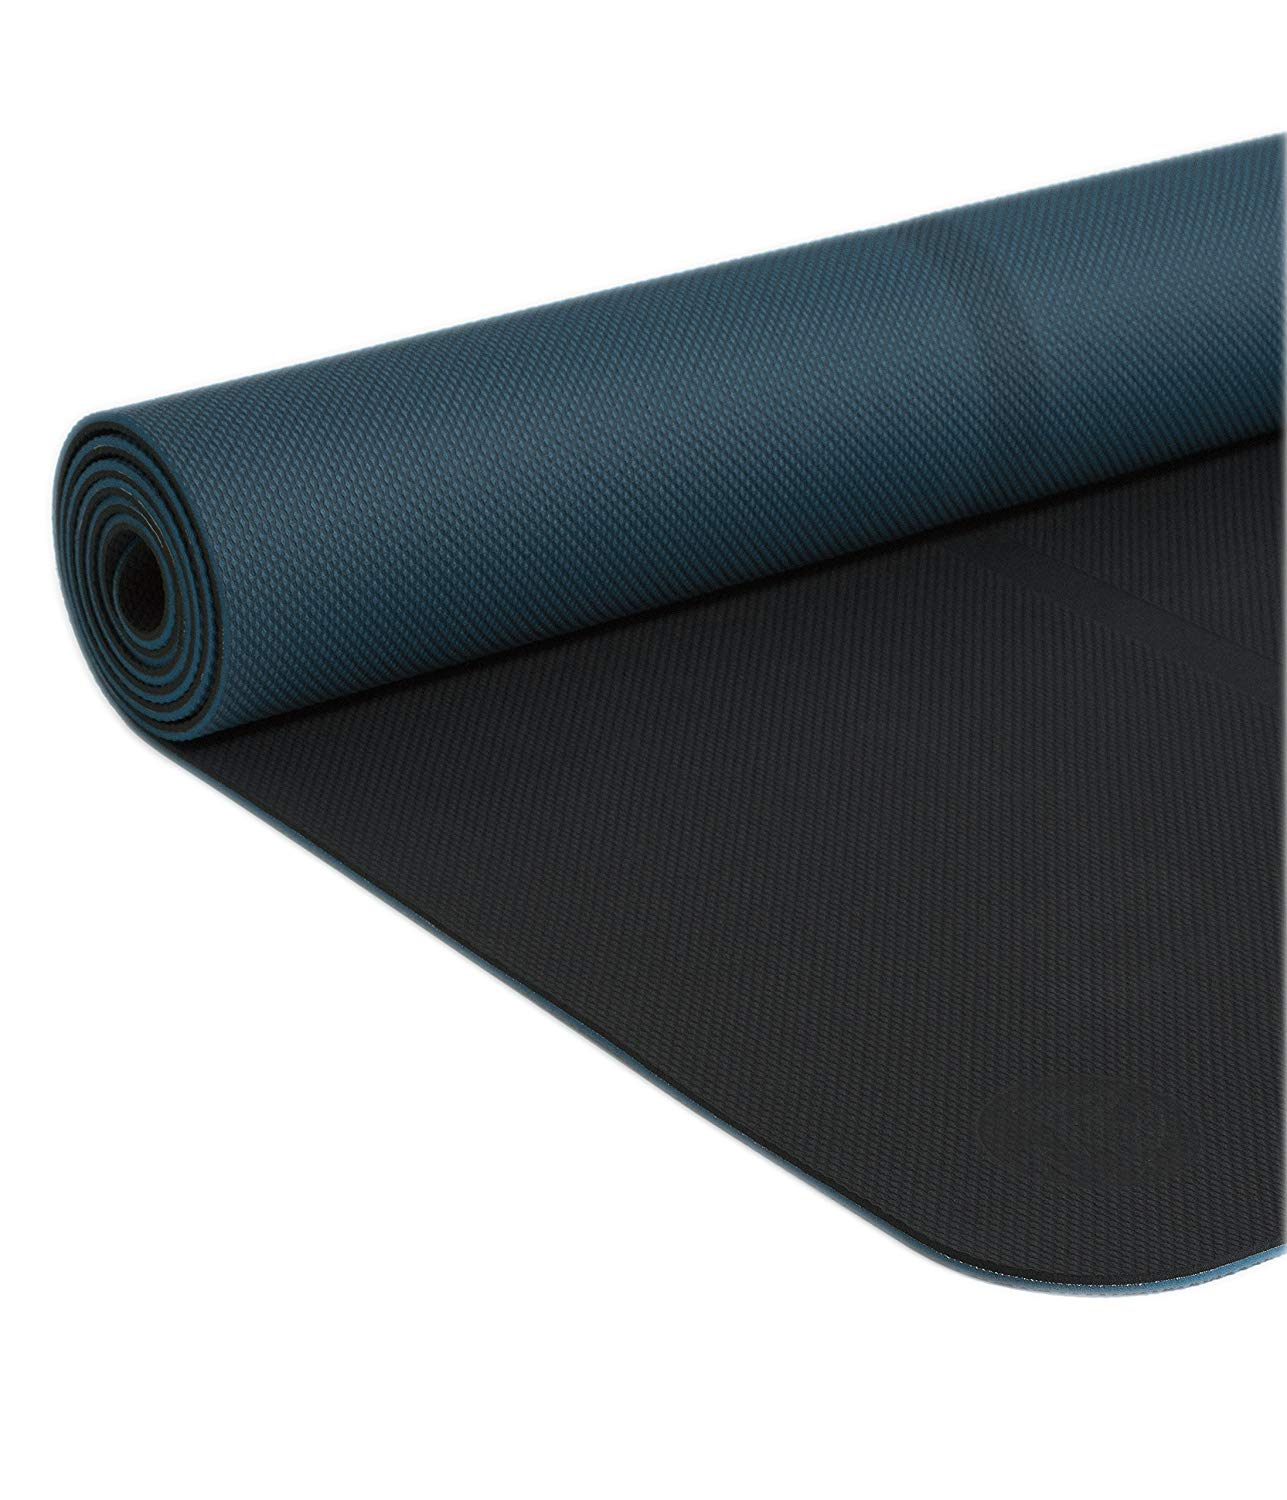 Manduka welcome mat